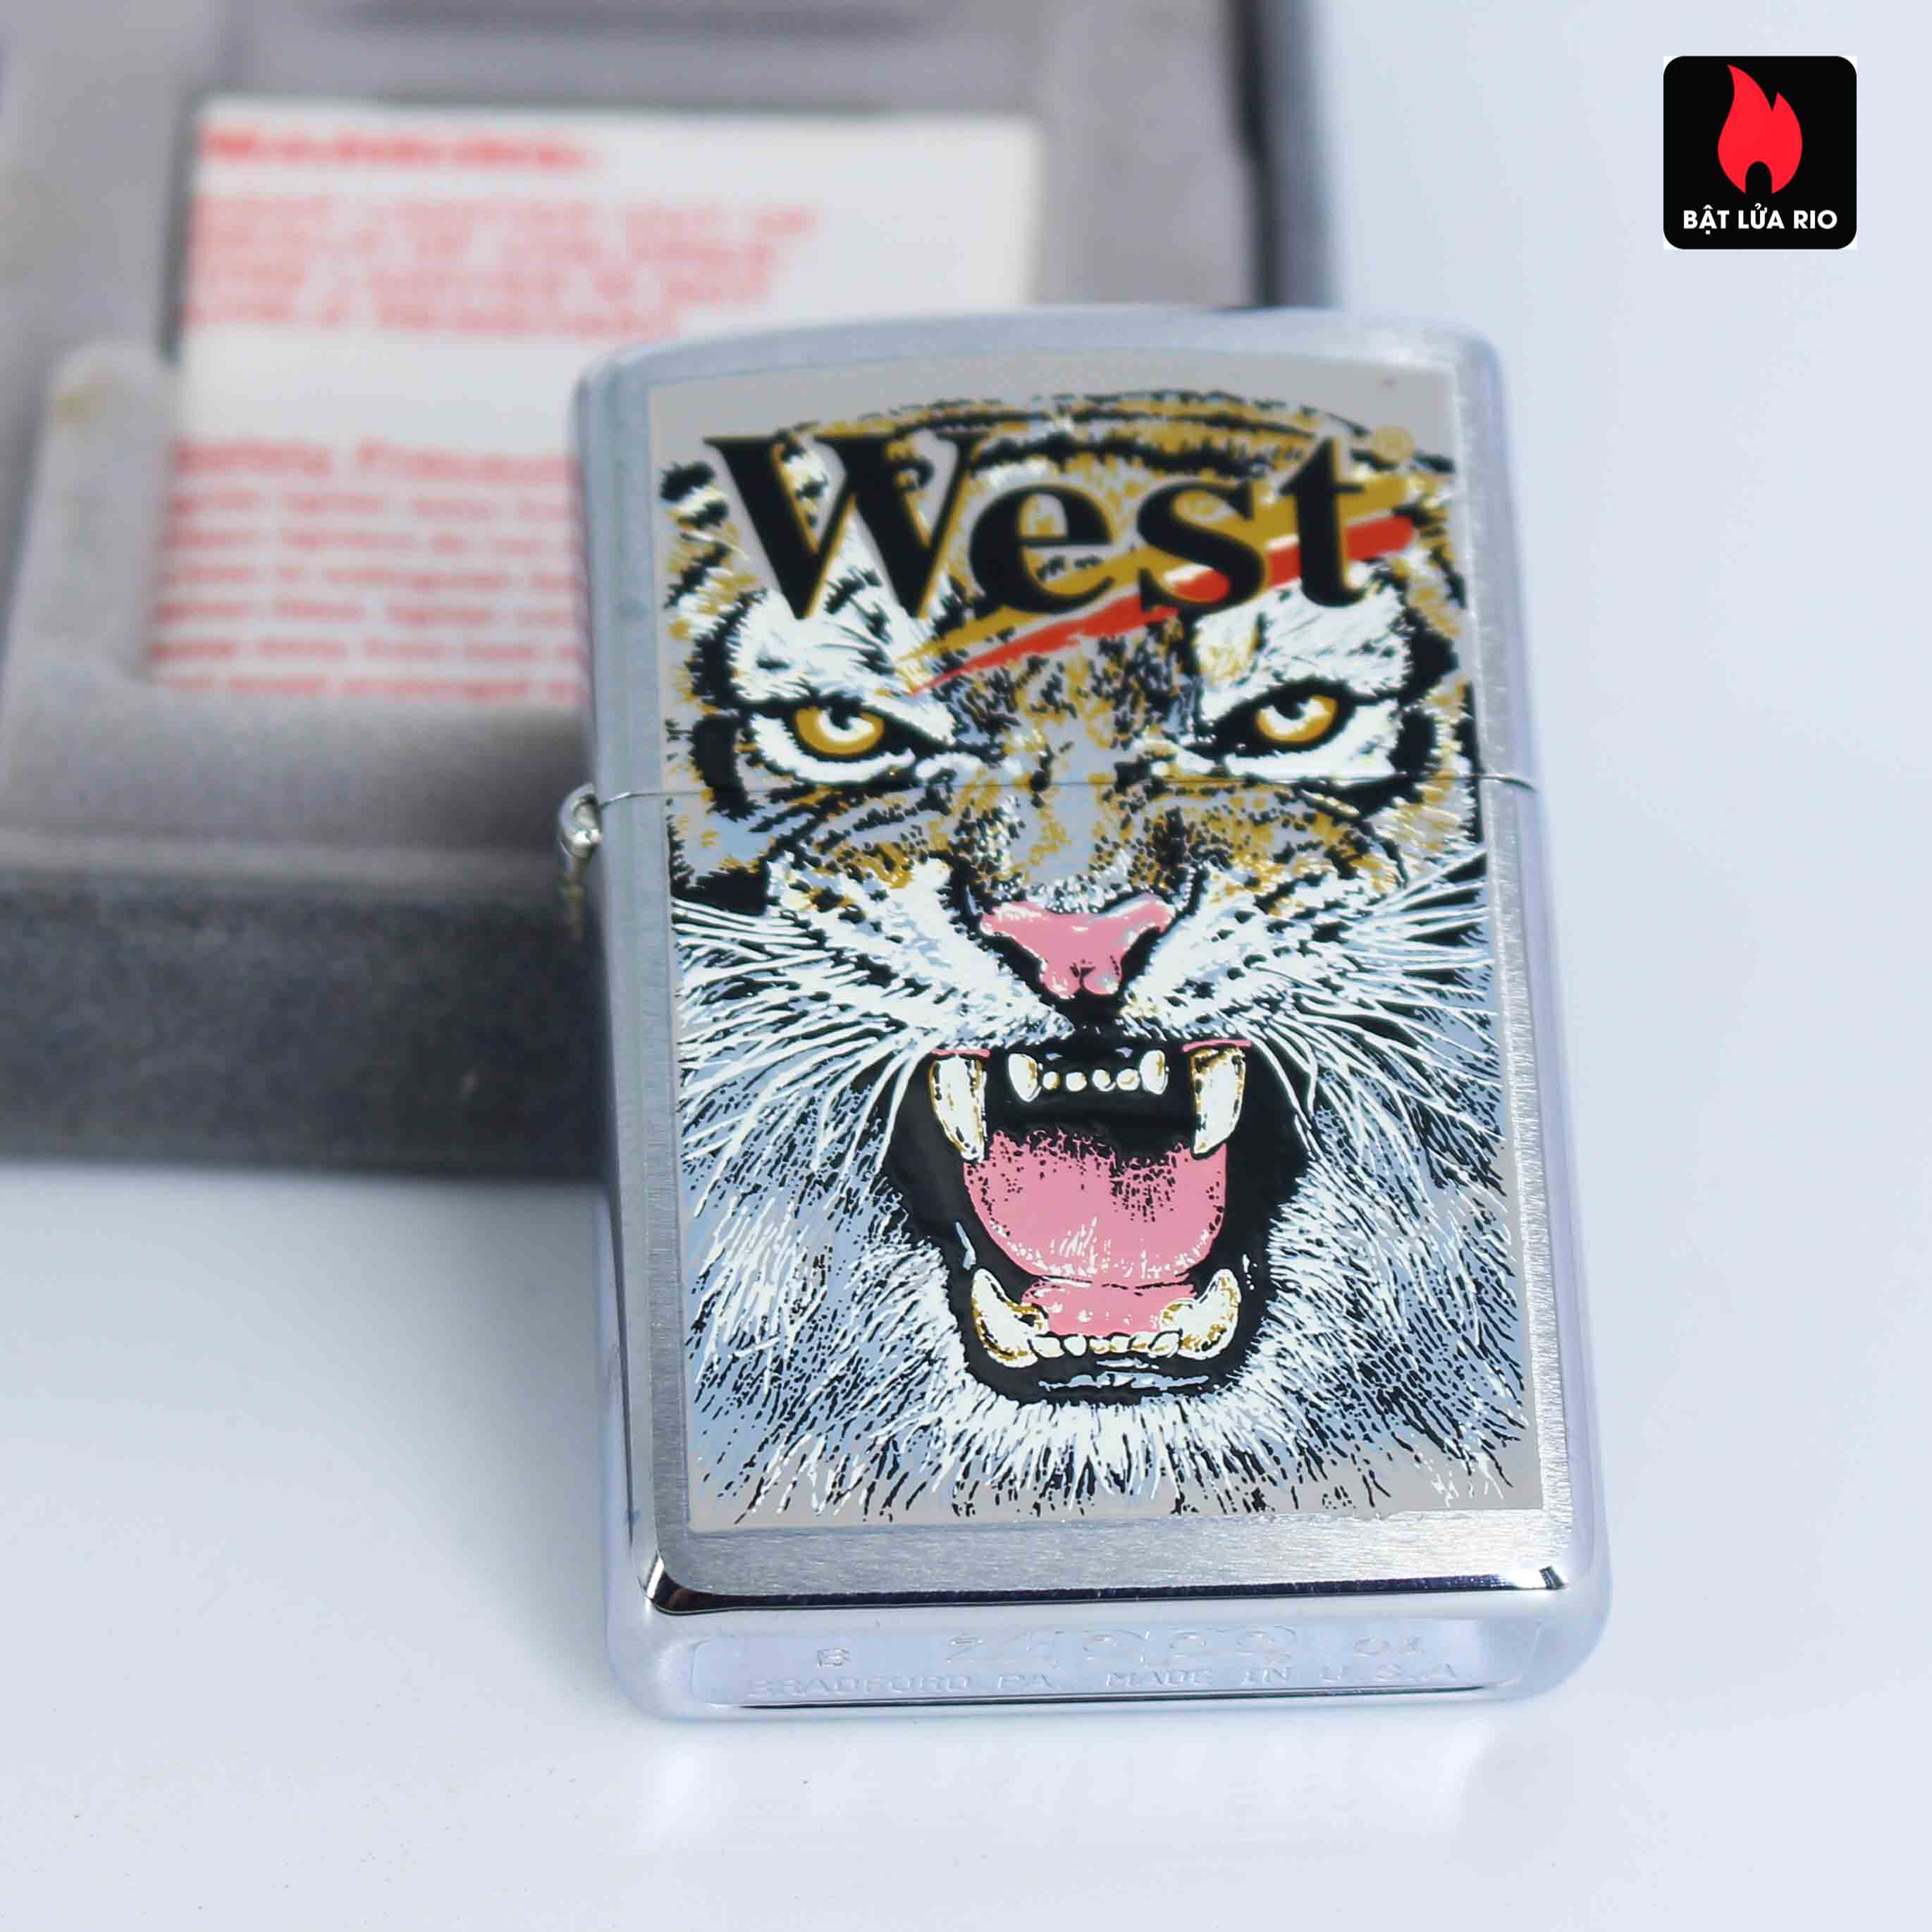 Zippo 2001 - Wild Lighters Edition - Limited Edition /1000 6